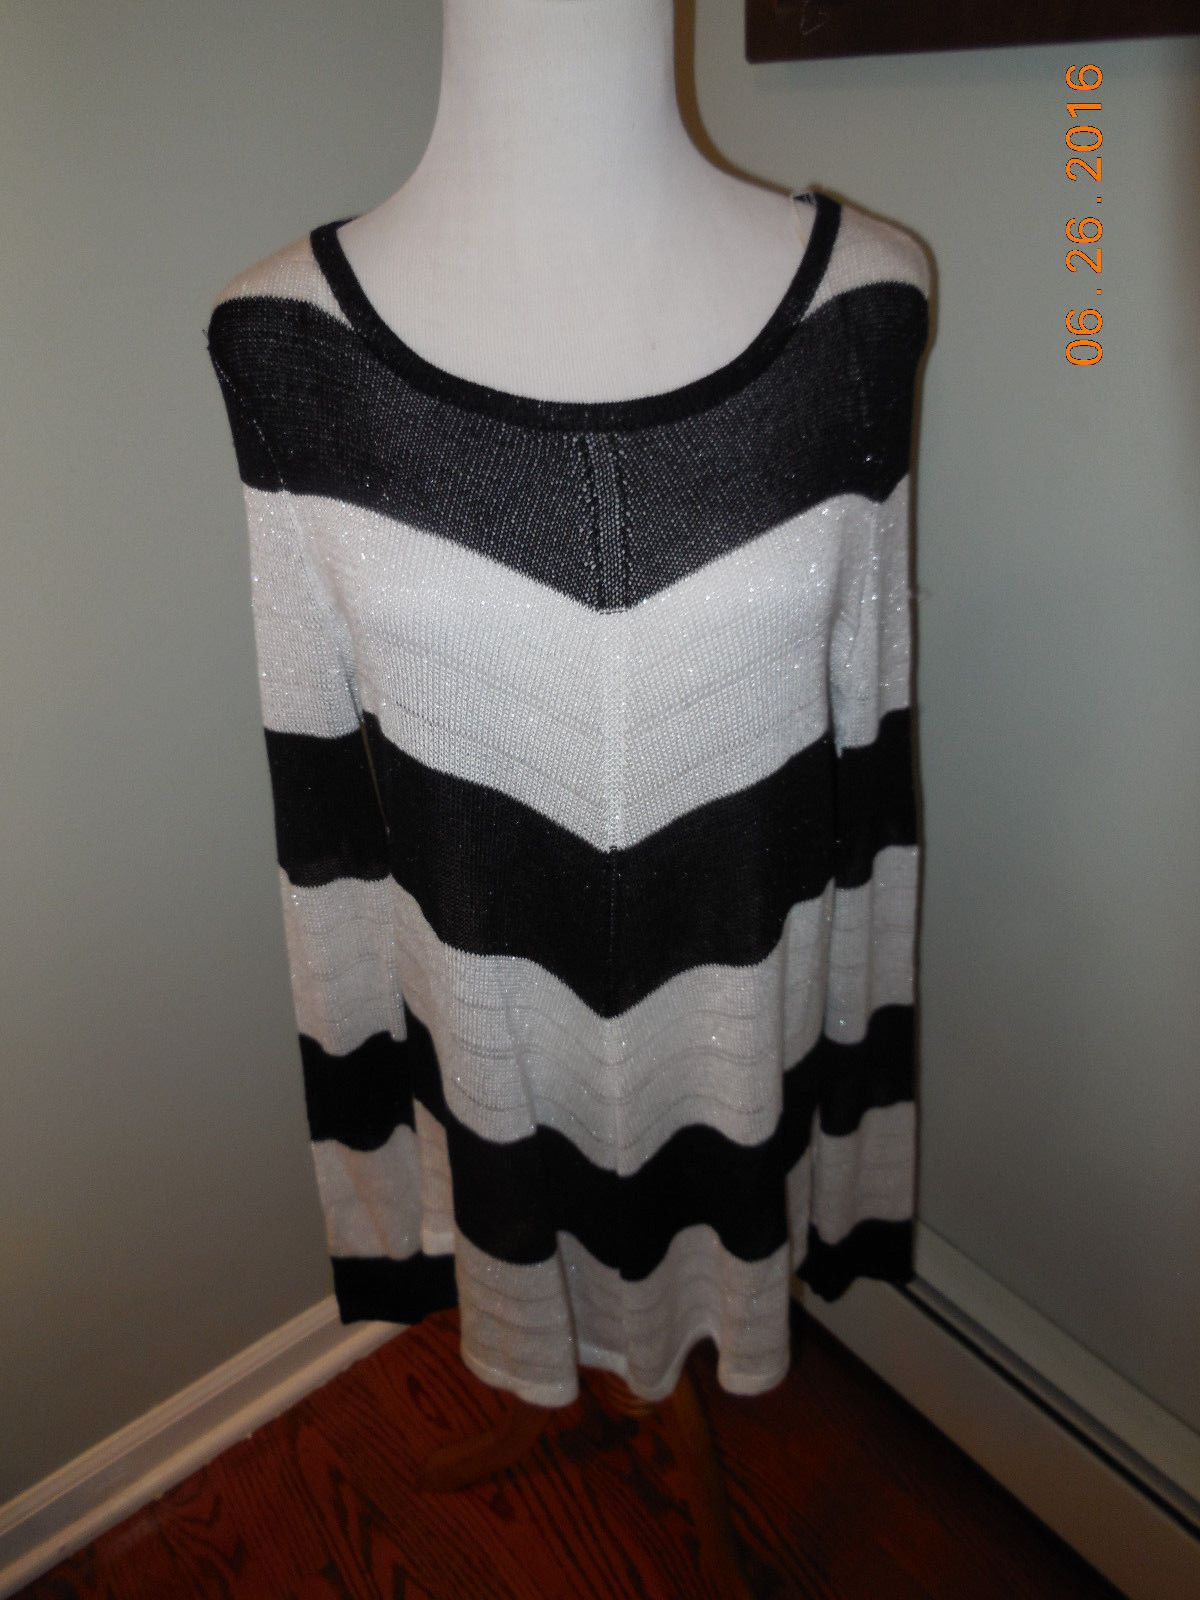 New Jennifer Lopez Womens Black White Chevron Stripe Sweater Size 0X Retail $58 | eBay